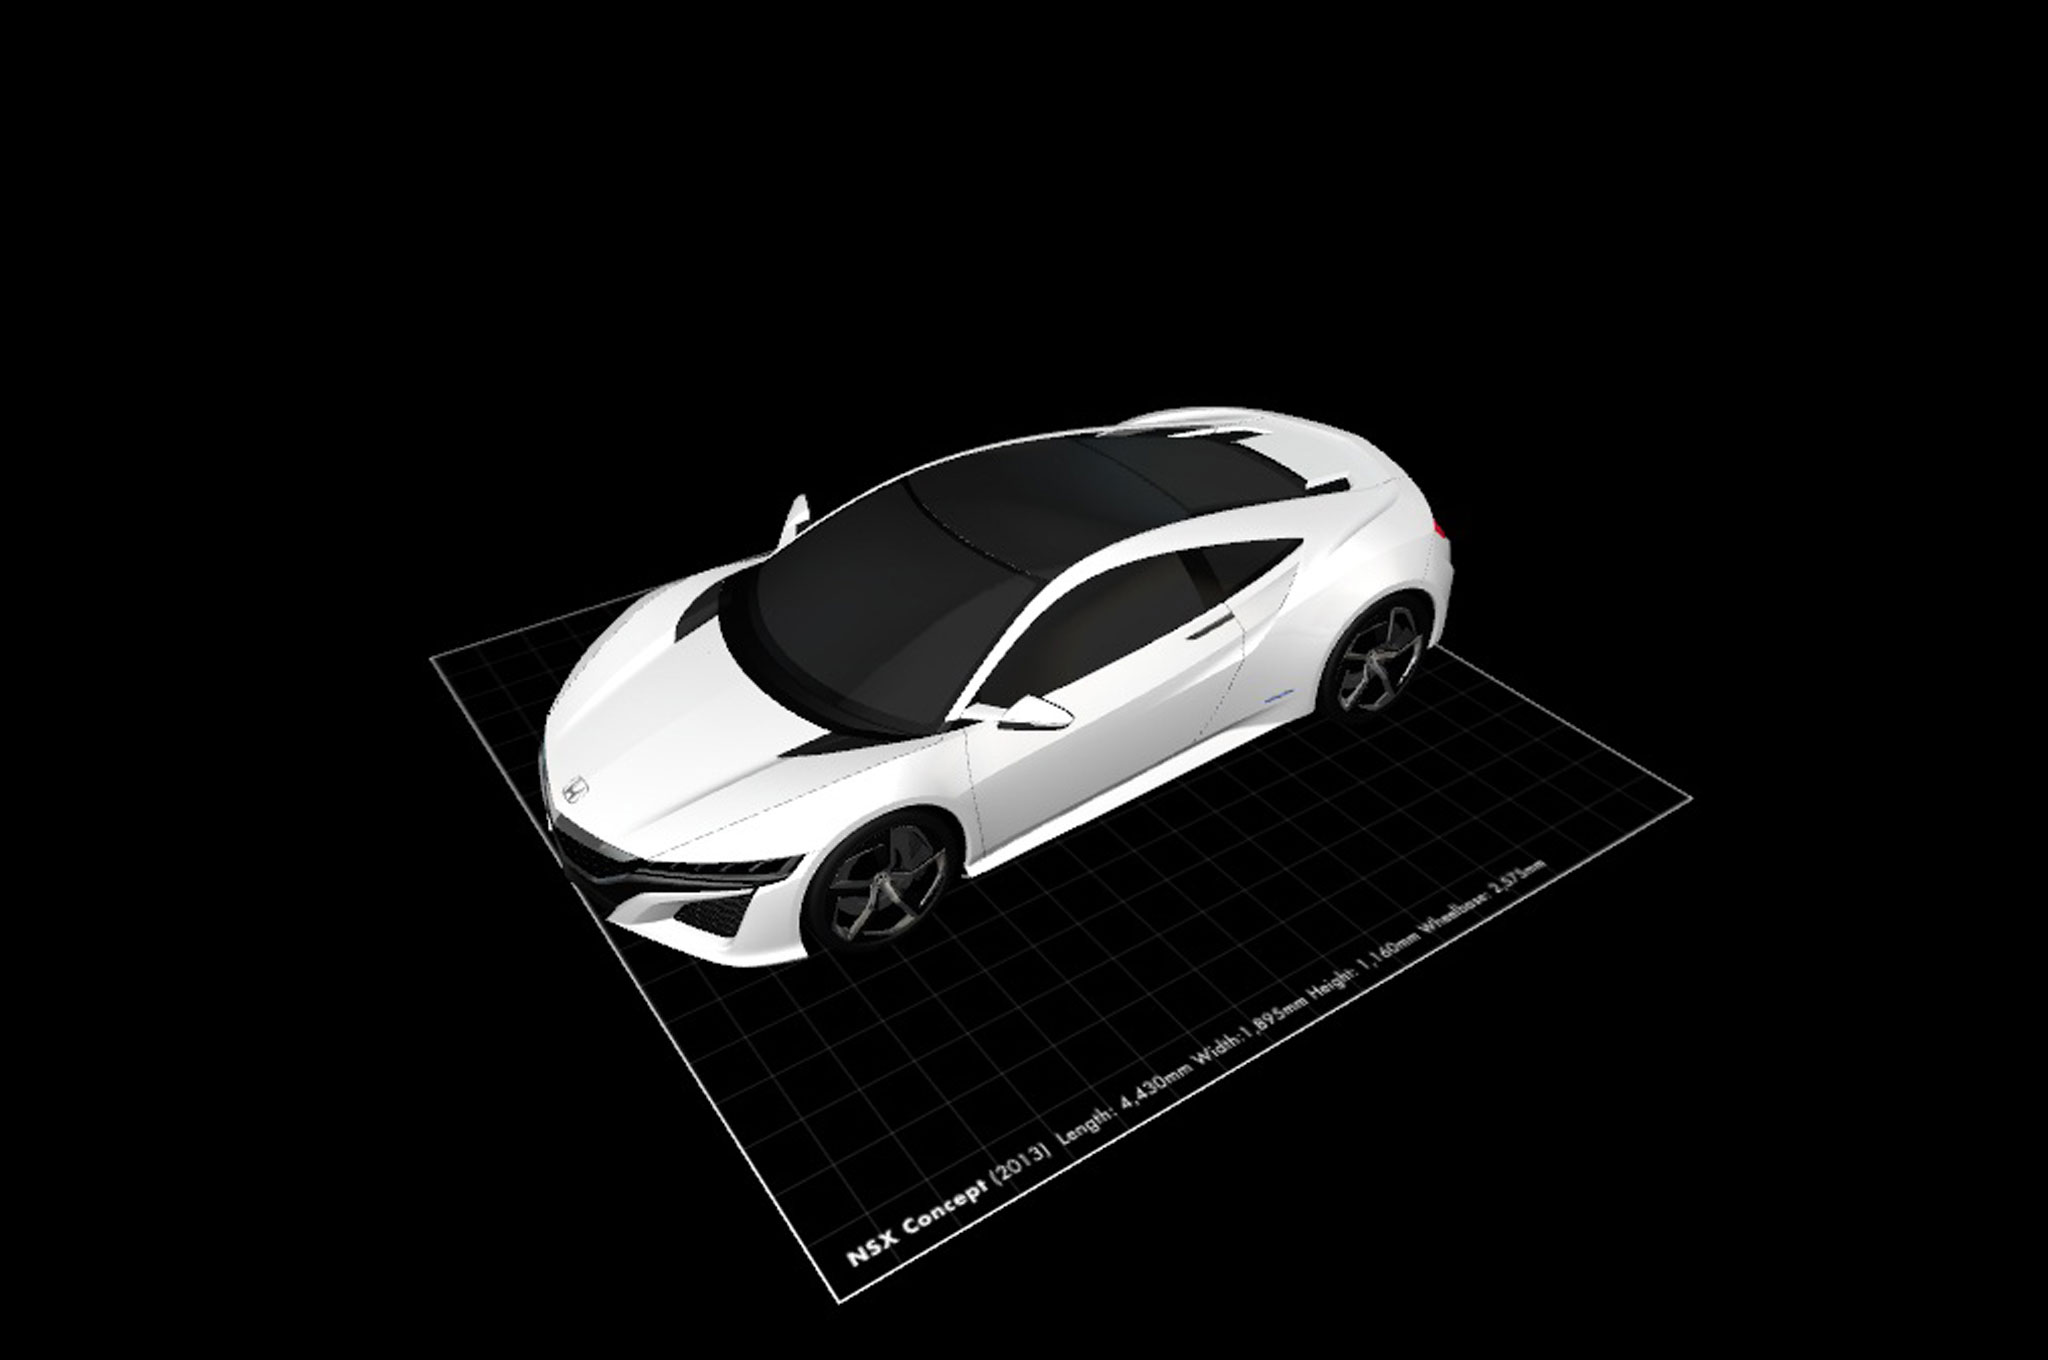 Now Printable in 3D: Acura NSX Concept